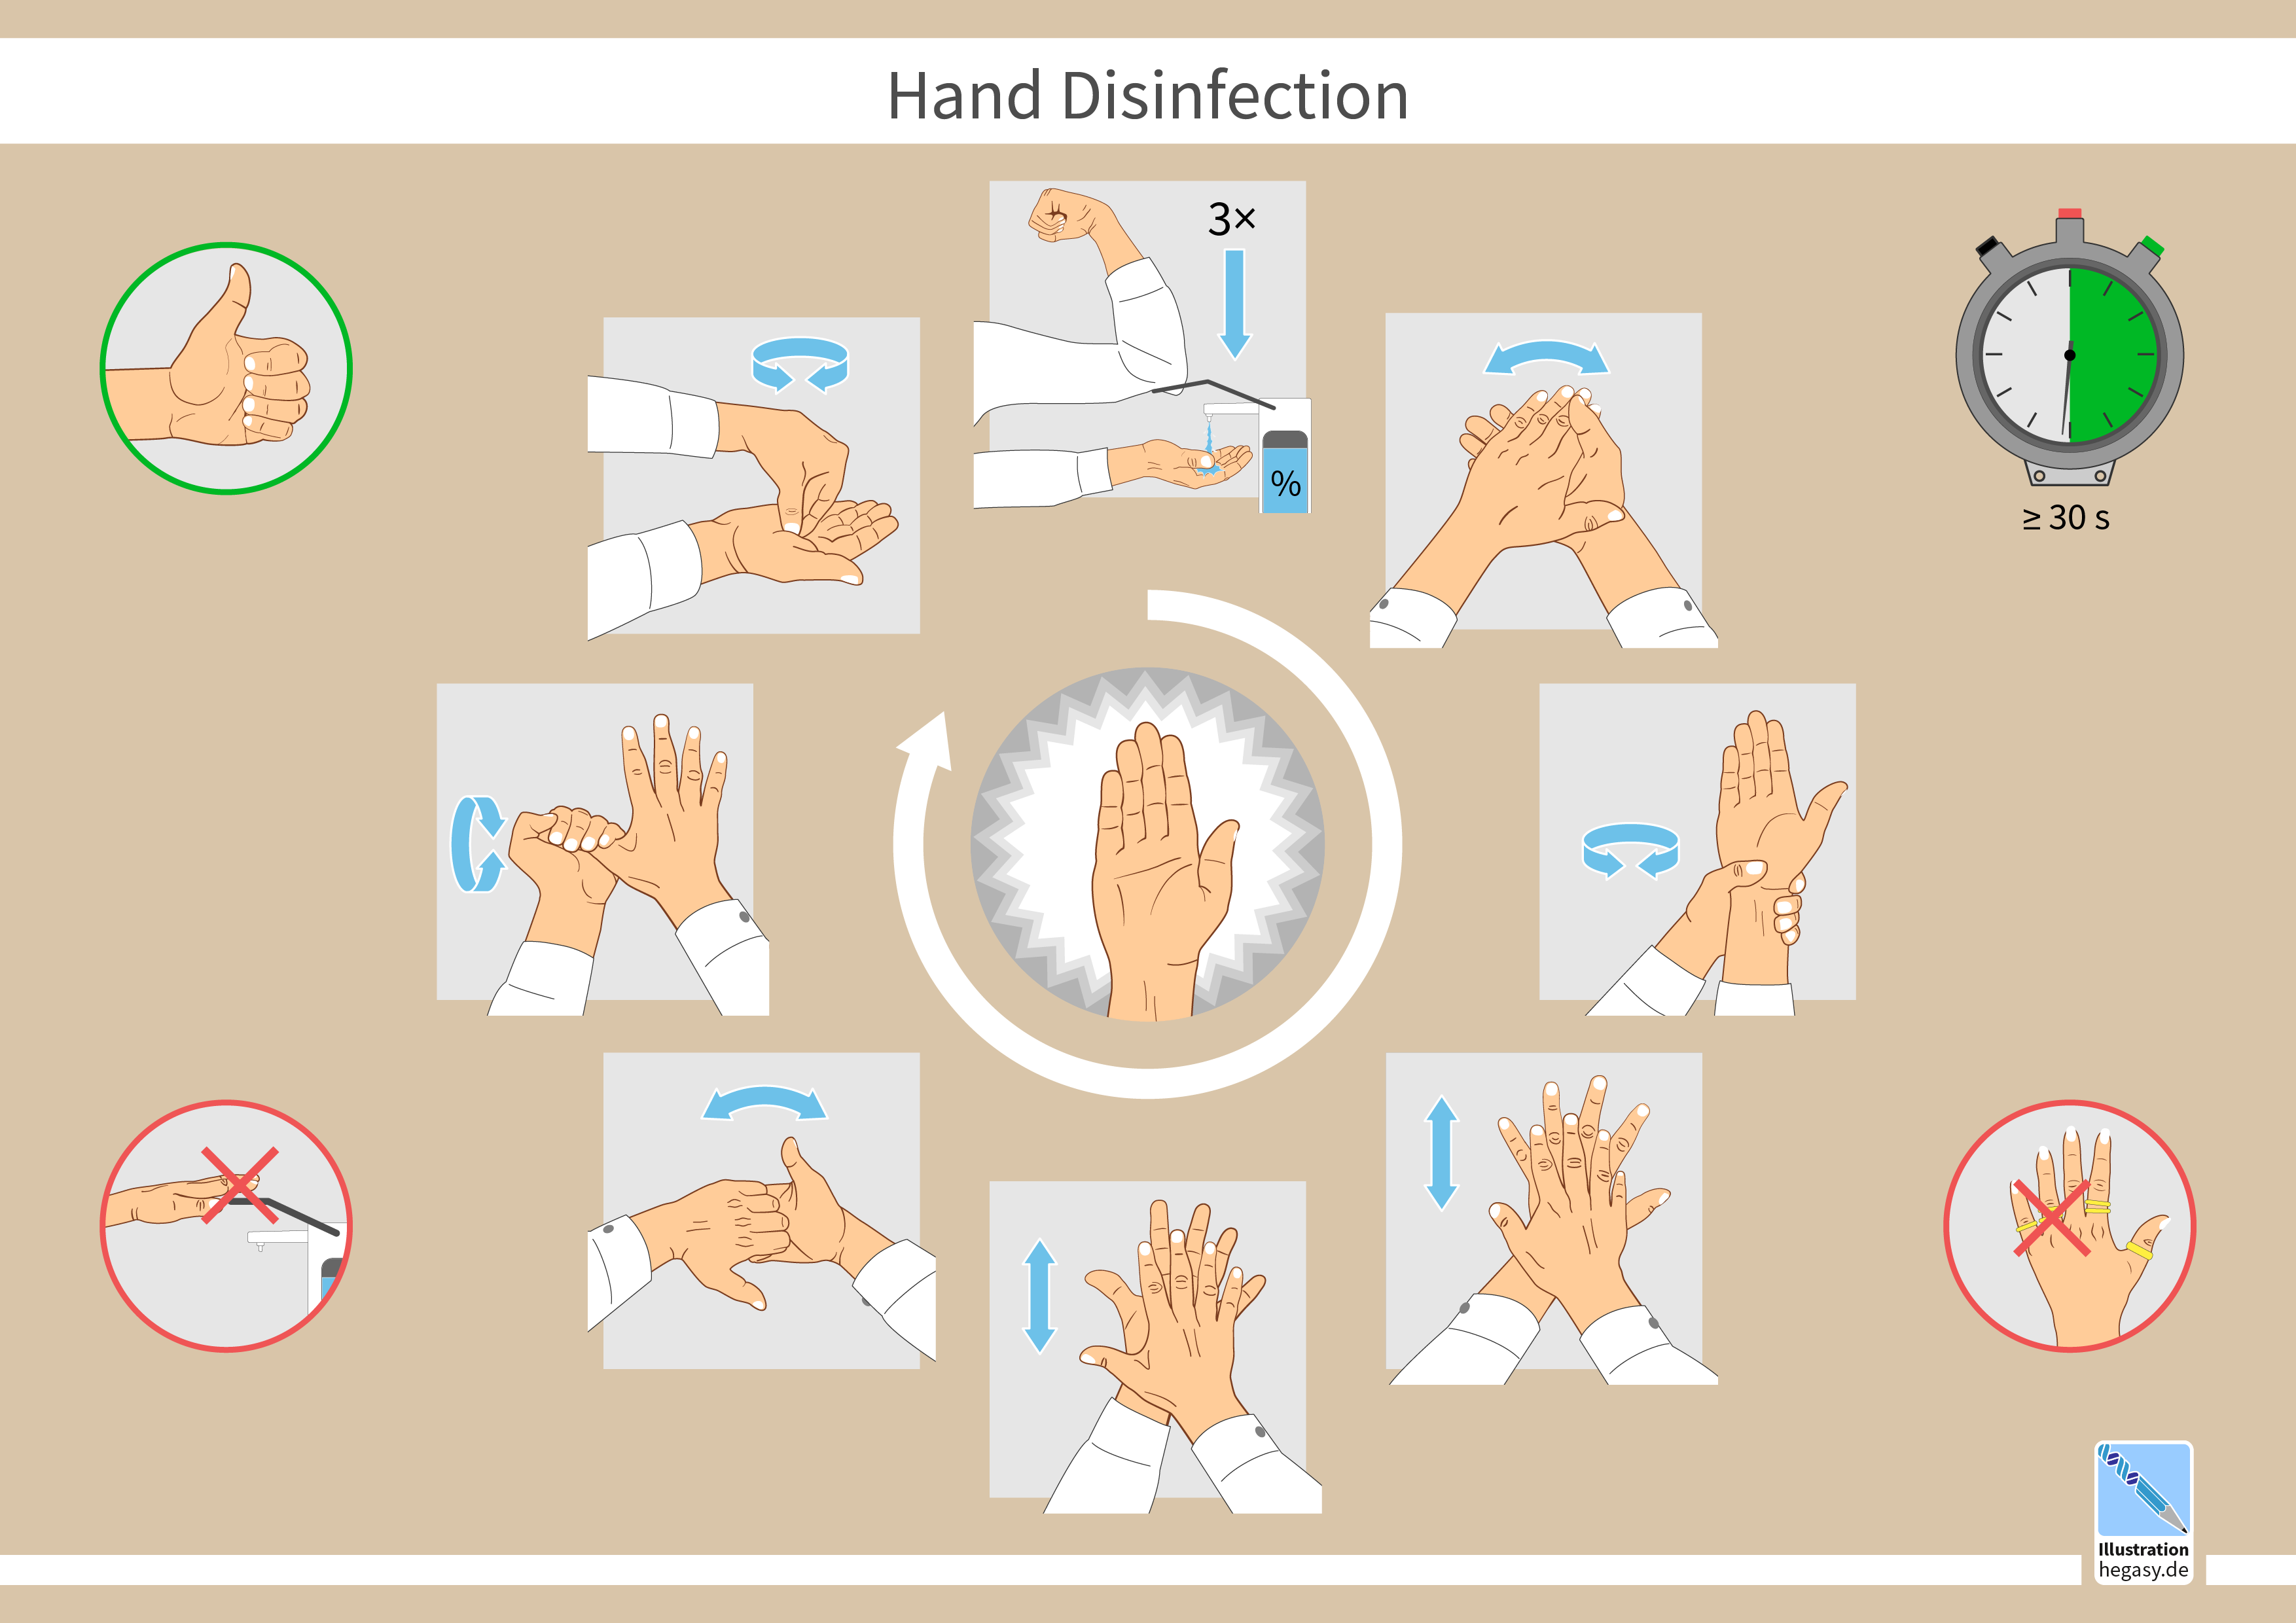 How clean are your hands